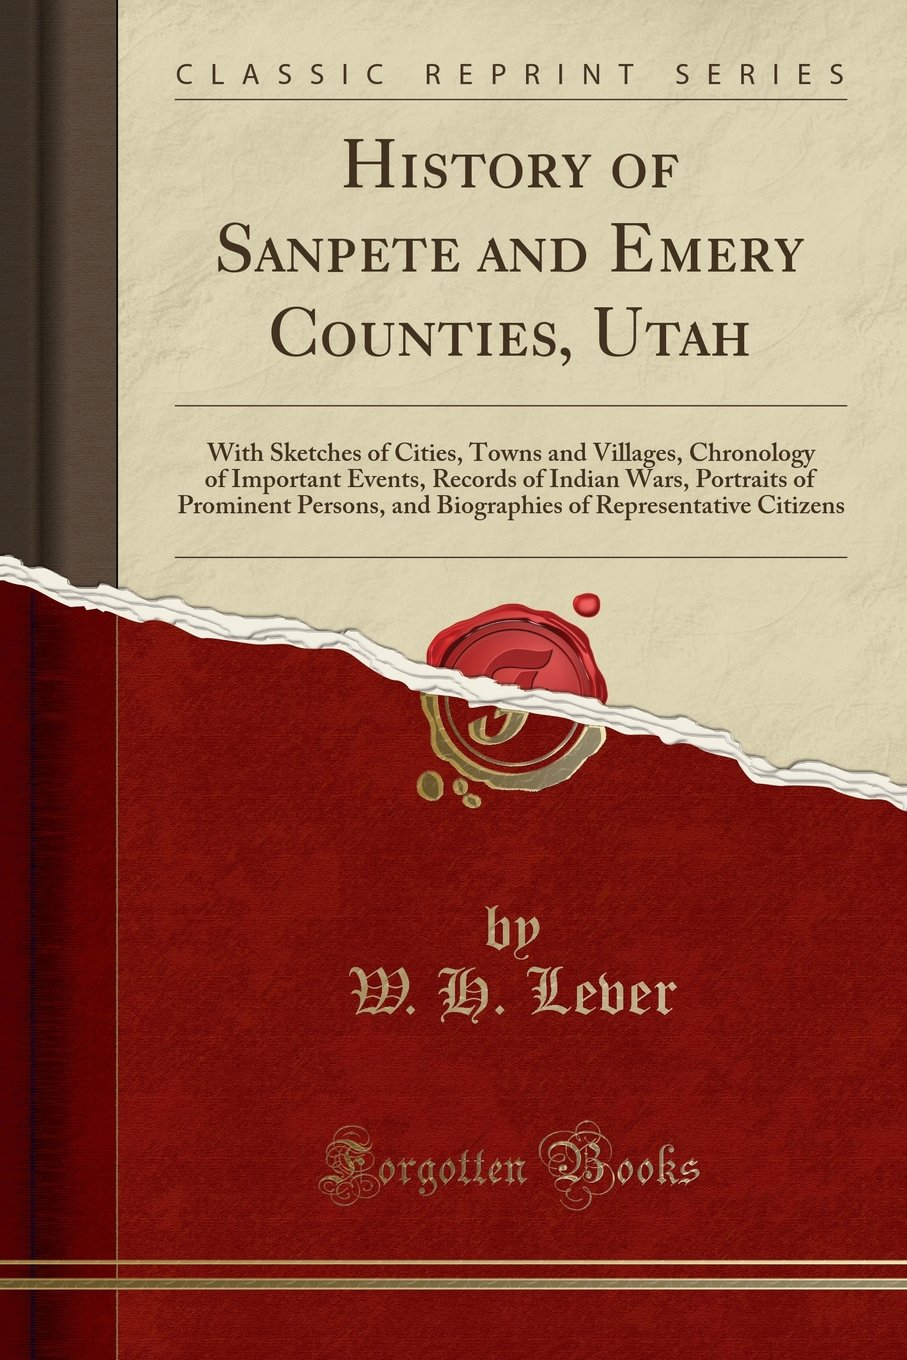 Download History of Sanpete and Emery Counties, Utah: With Sketches of Cities, Towns and Villages, Chronology of Important Events, Records of Indian Wars, ... of Representative Citizens (Classic Reprint) pdf epub